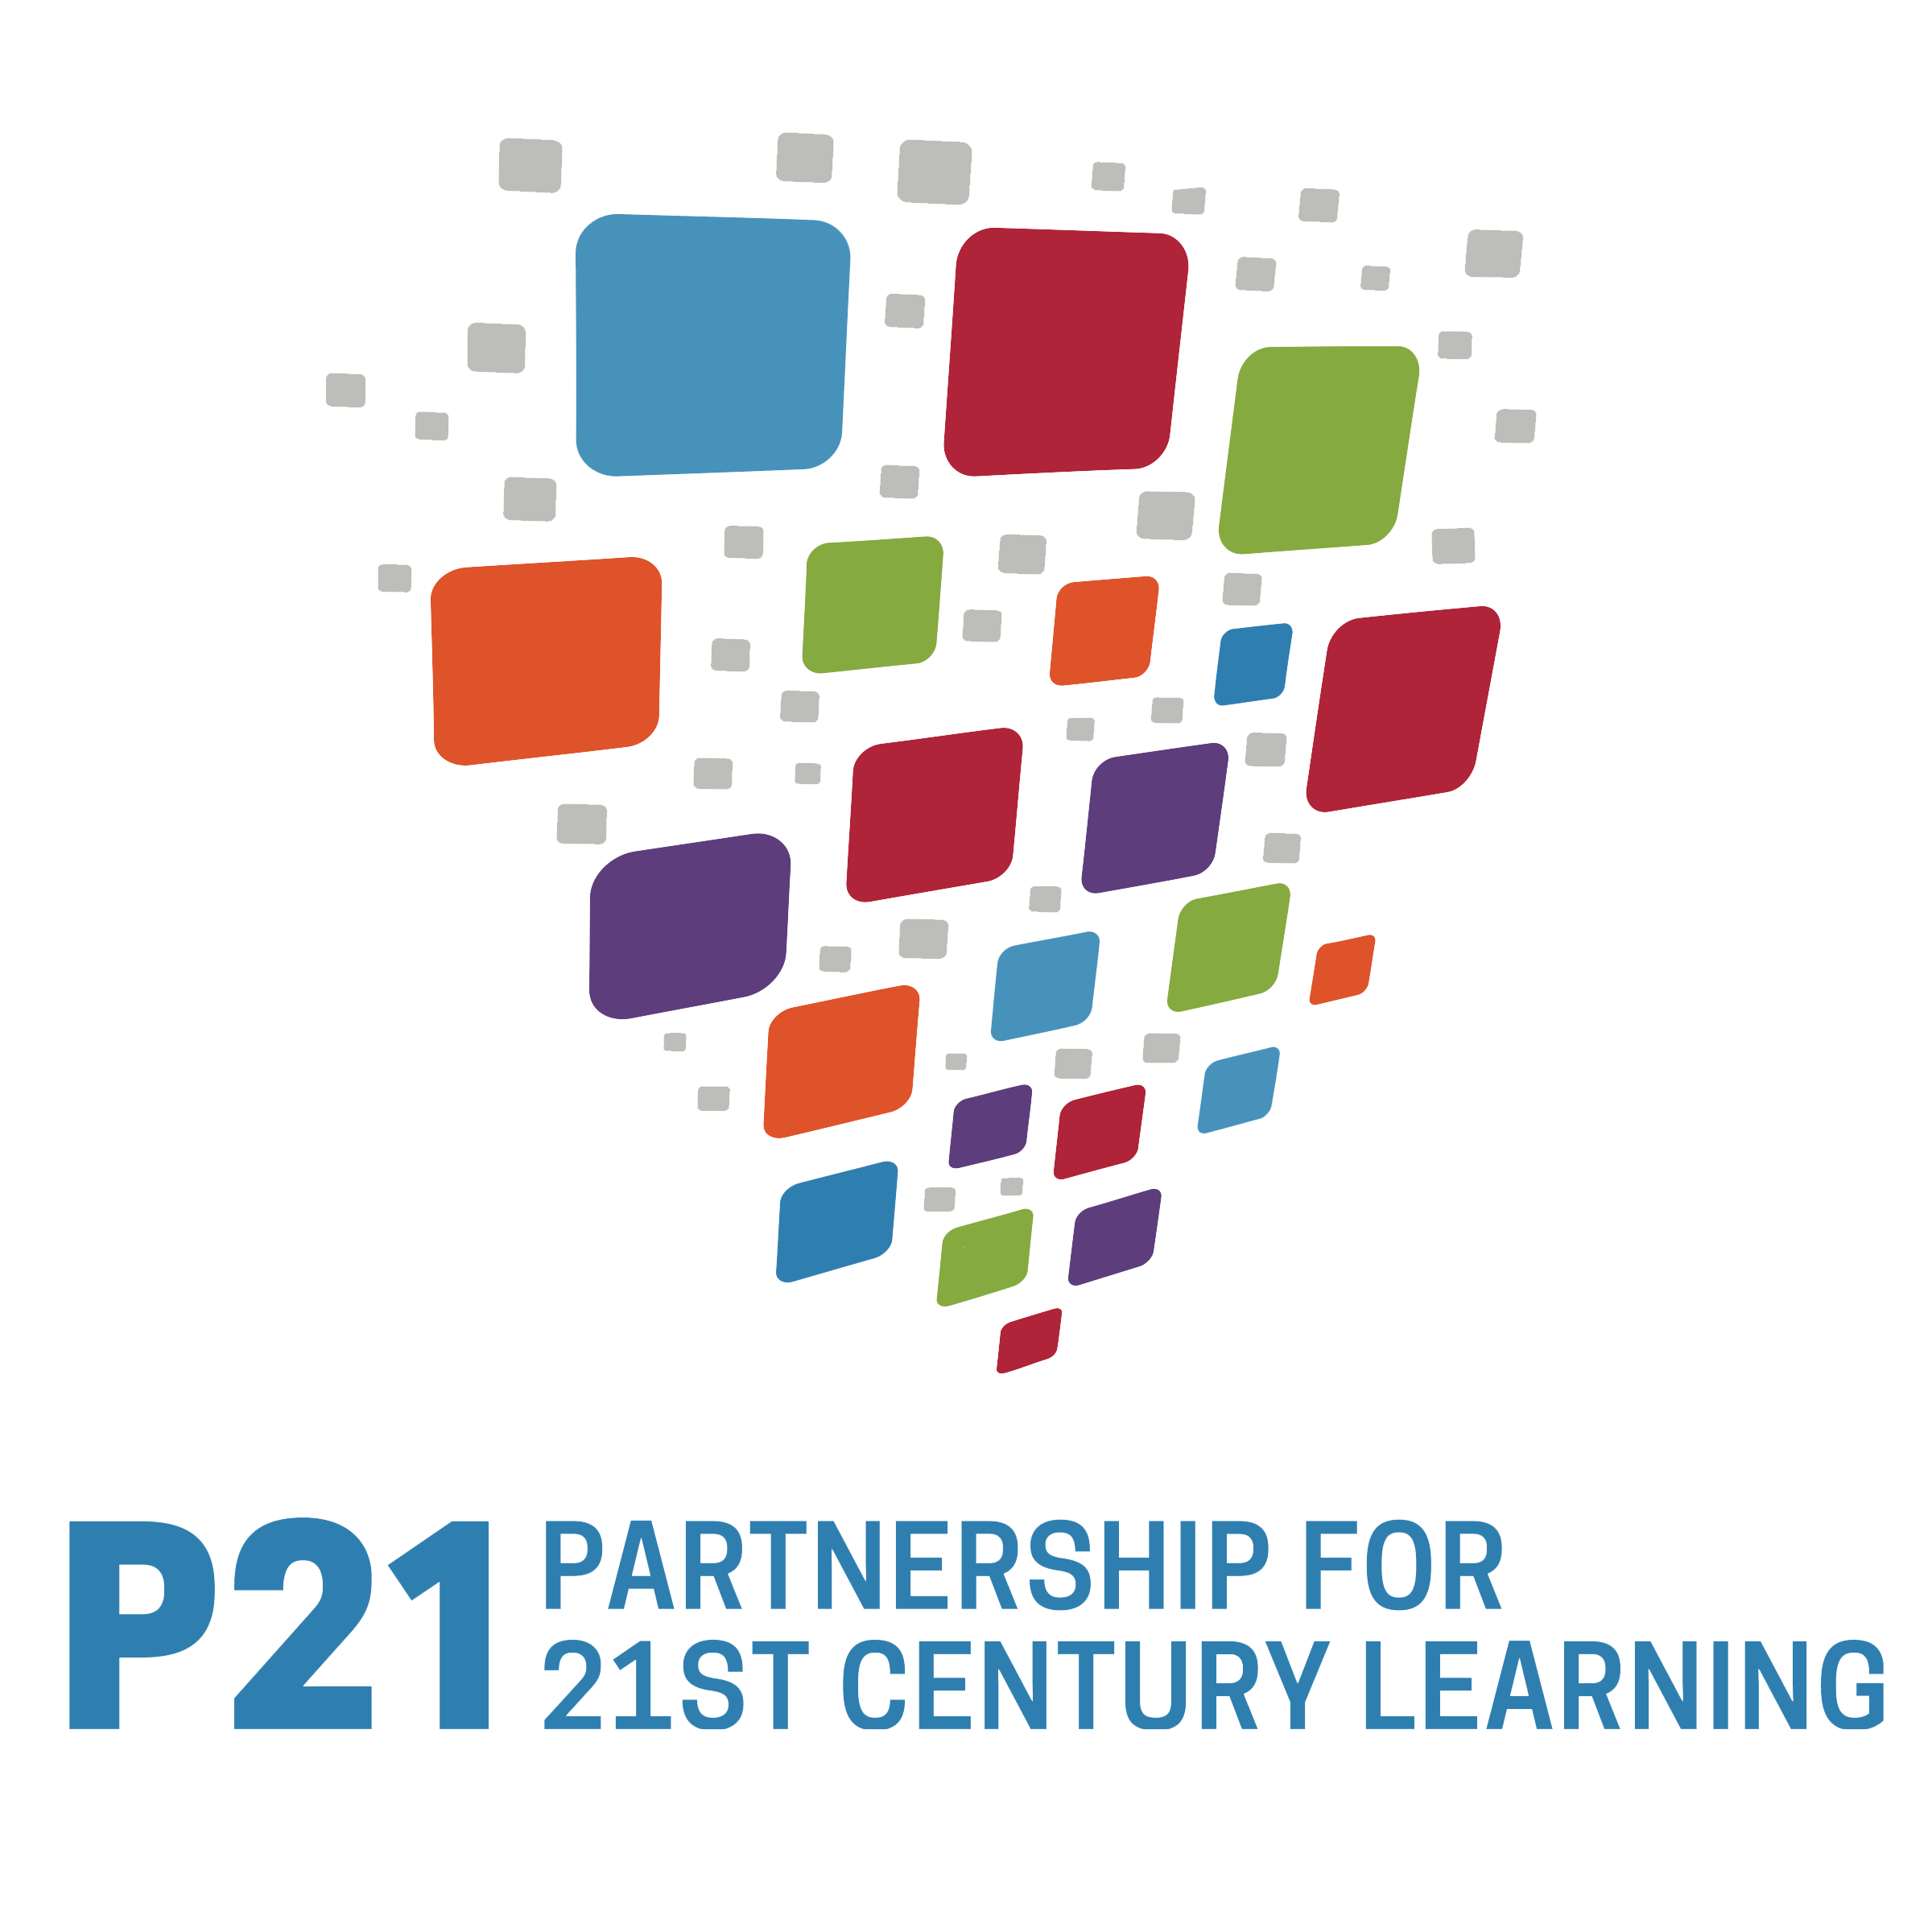 Partnership for 21st Century Learning